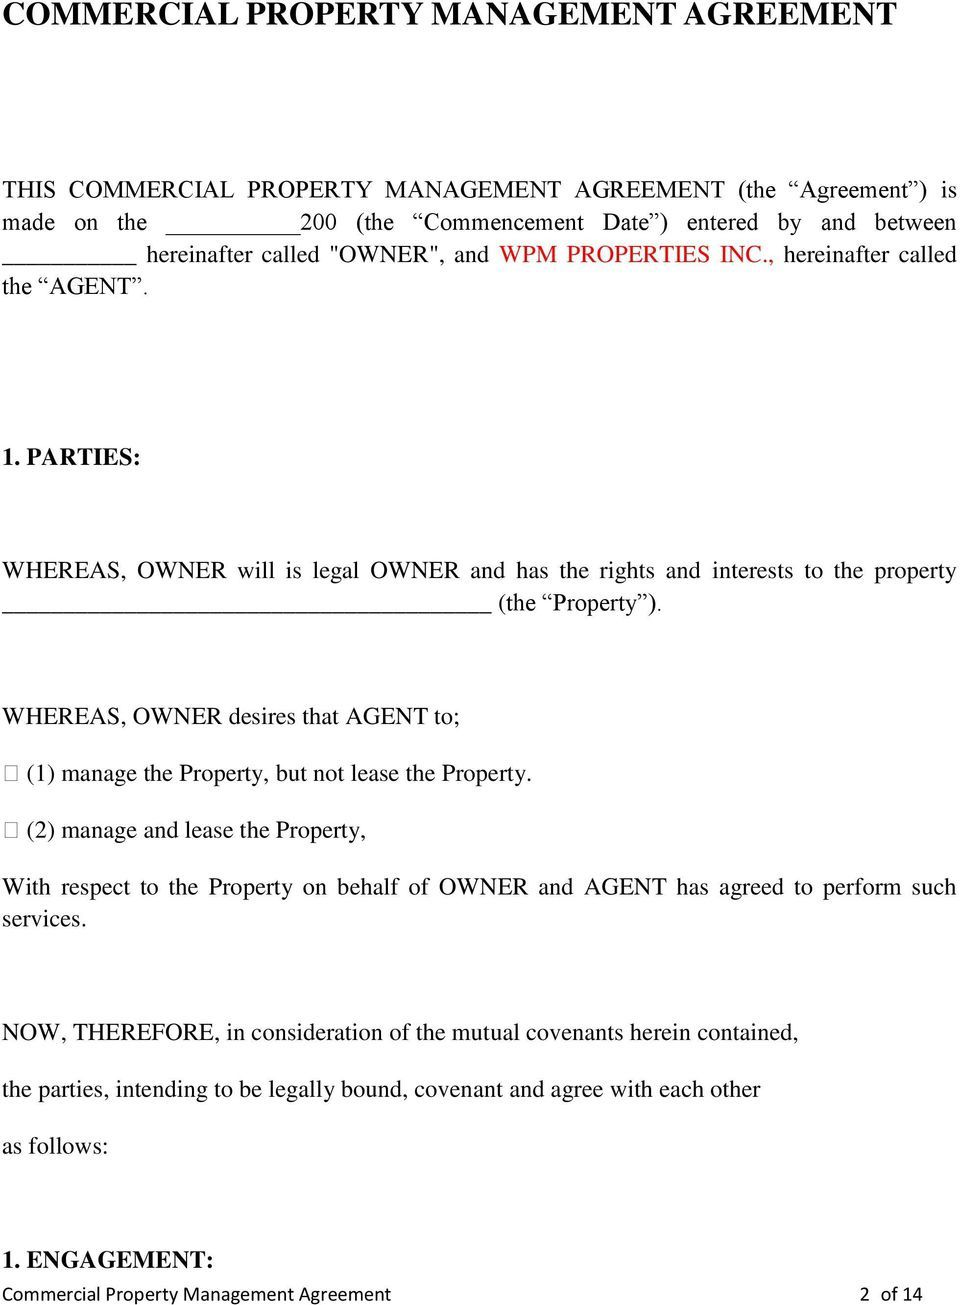 003 Impressive Property Management Contract Sample Highest Quality  Philippine Agreement Template Pdf CommercialFull